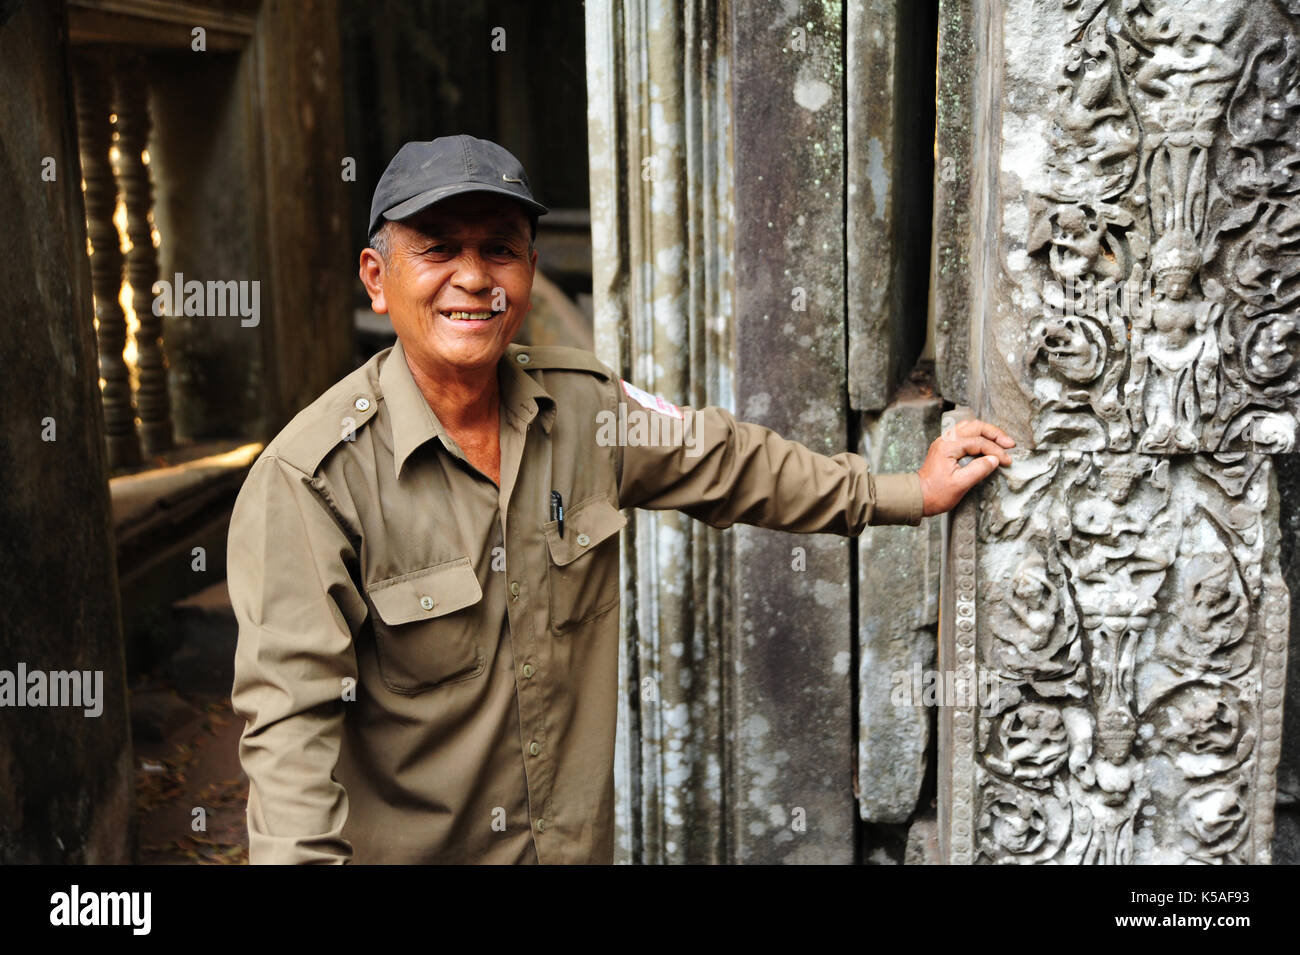 Siem Reap,Cambodia - Feb 11,2013:A local tourist guide standing next to a monument, background is a temple monument in Beng Mealea,Siem Reap,Cambodia. - Stock Image